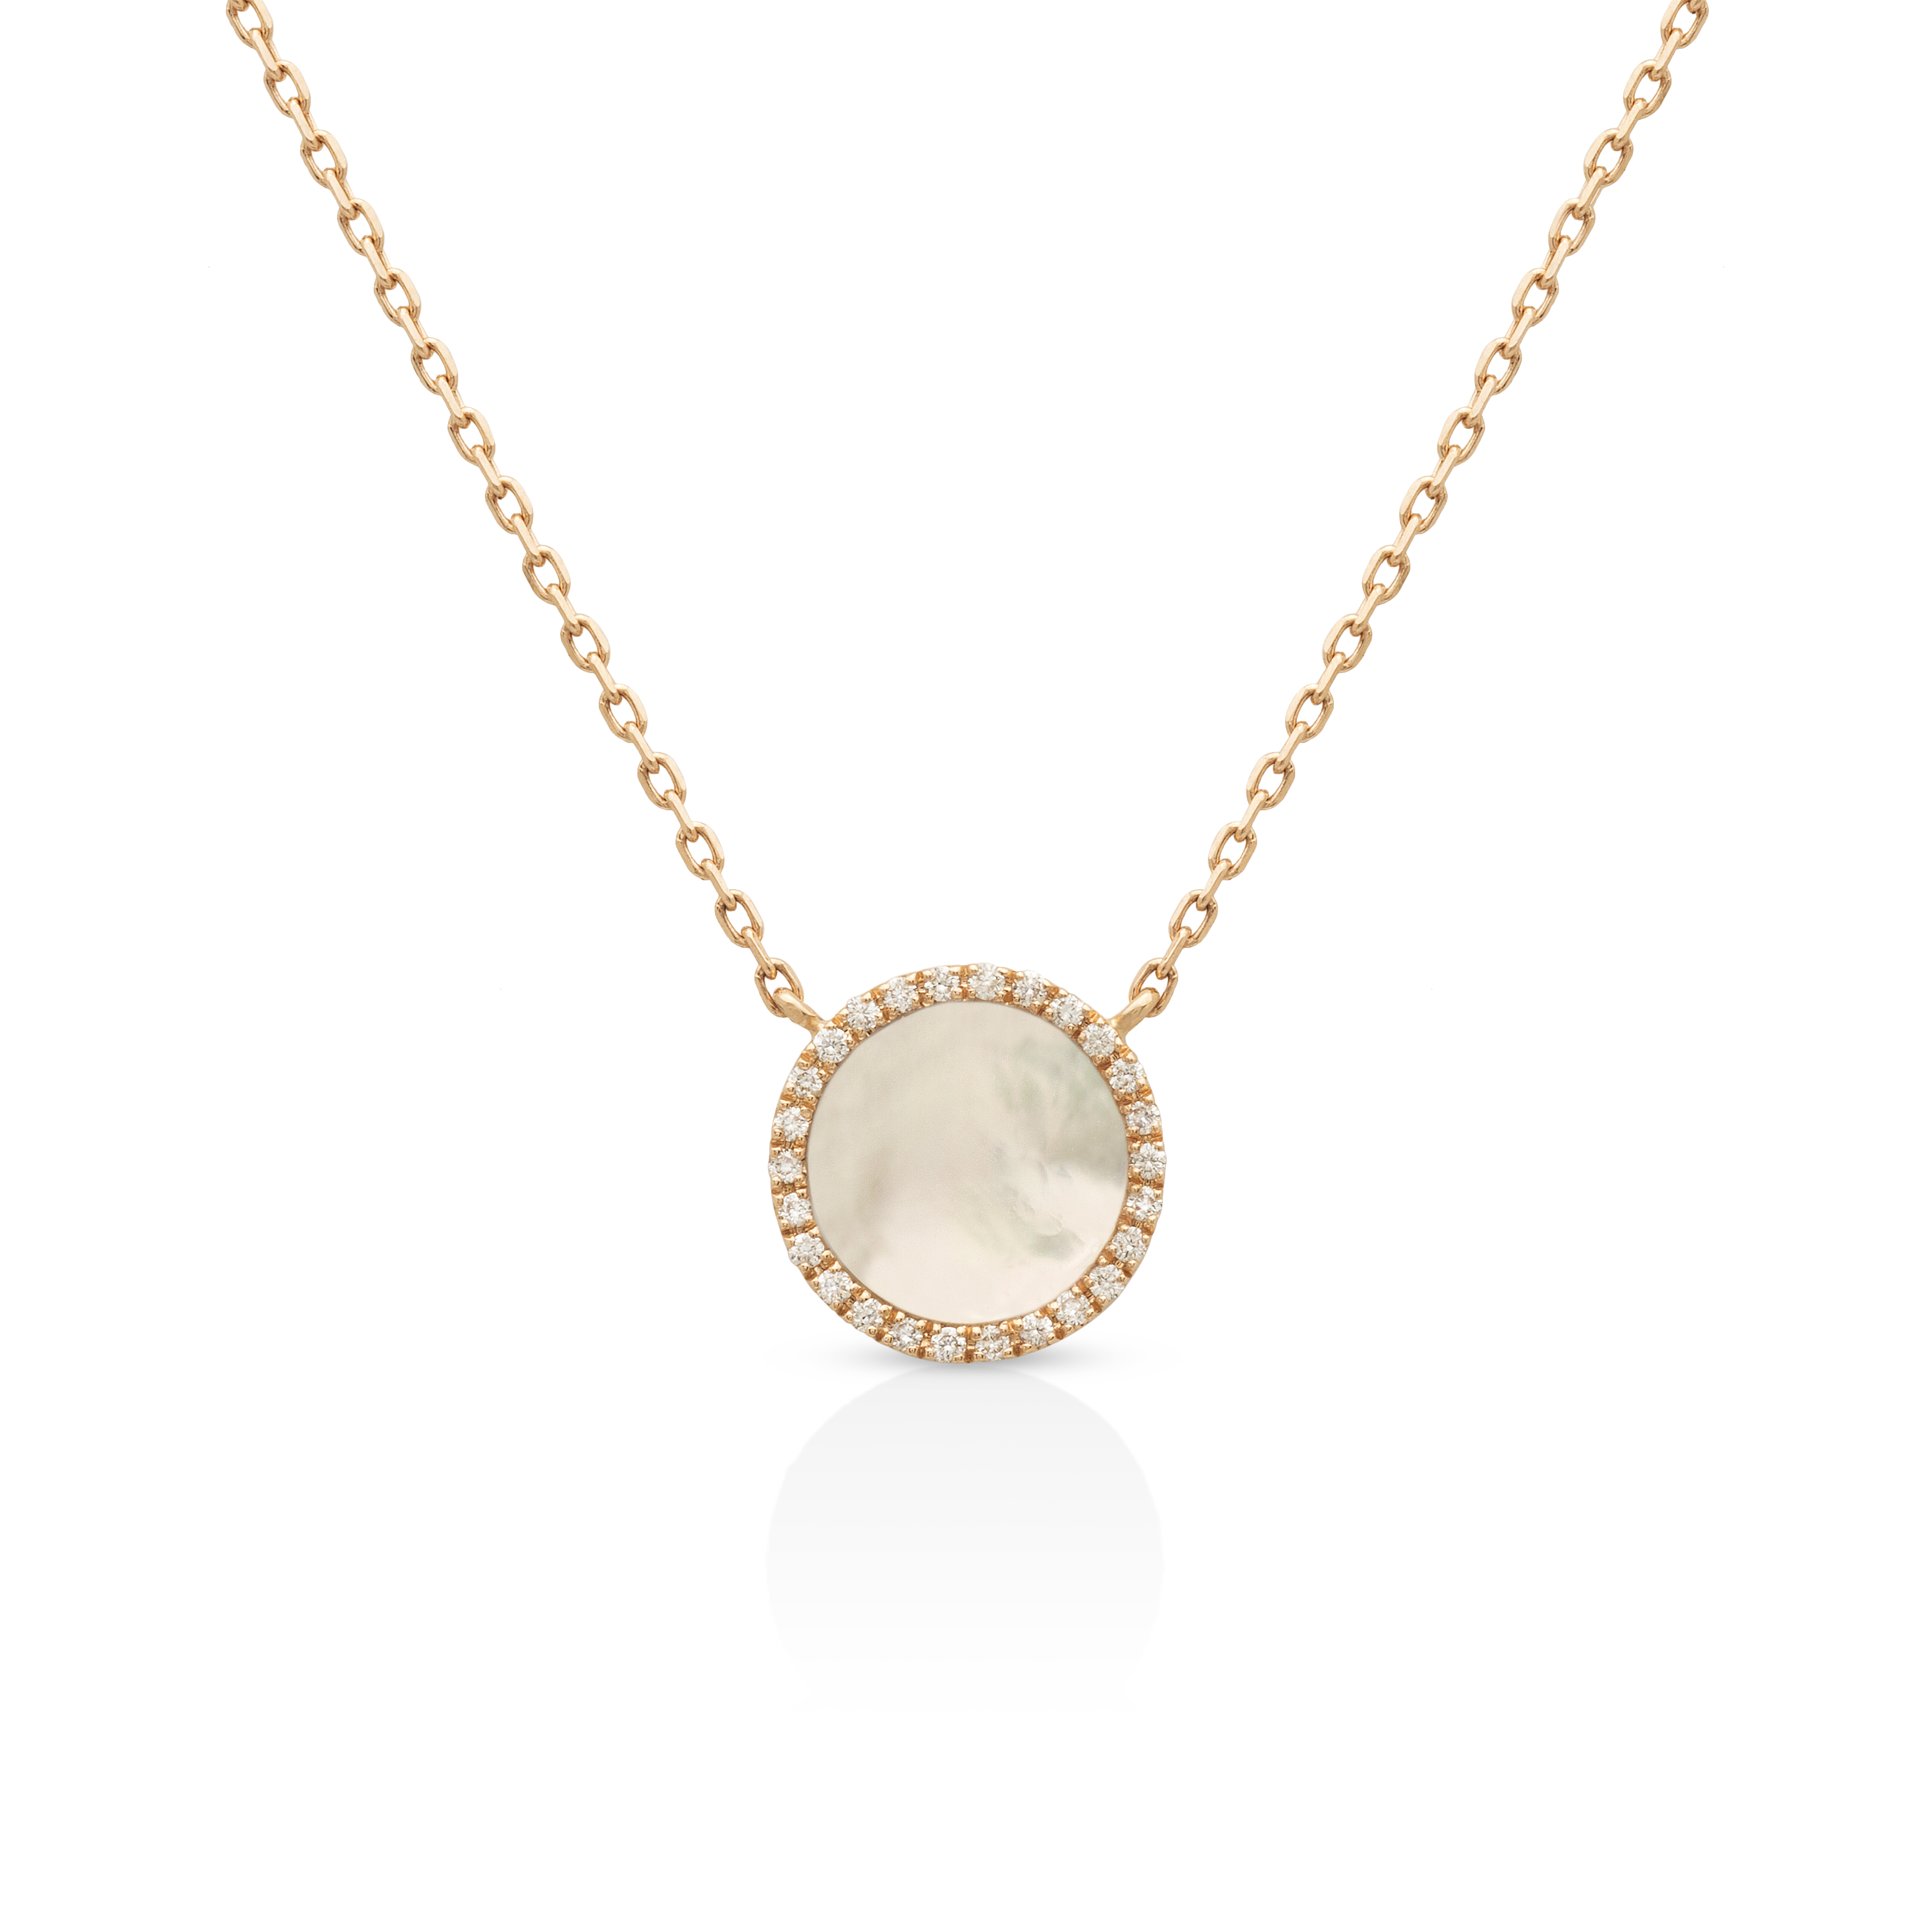 Bellatrix Diamond and Mother of Pearl Necklace - 18K Rose Gold by Aveen on curated-crowd.com